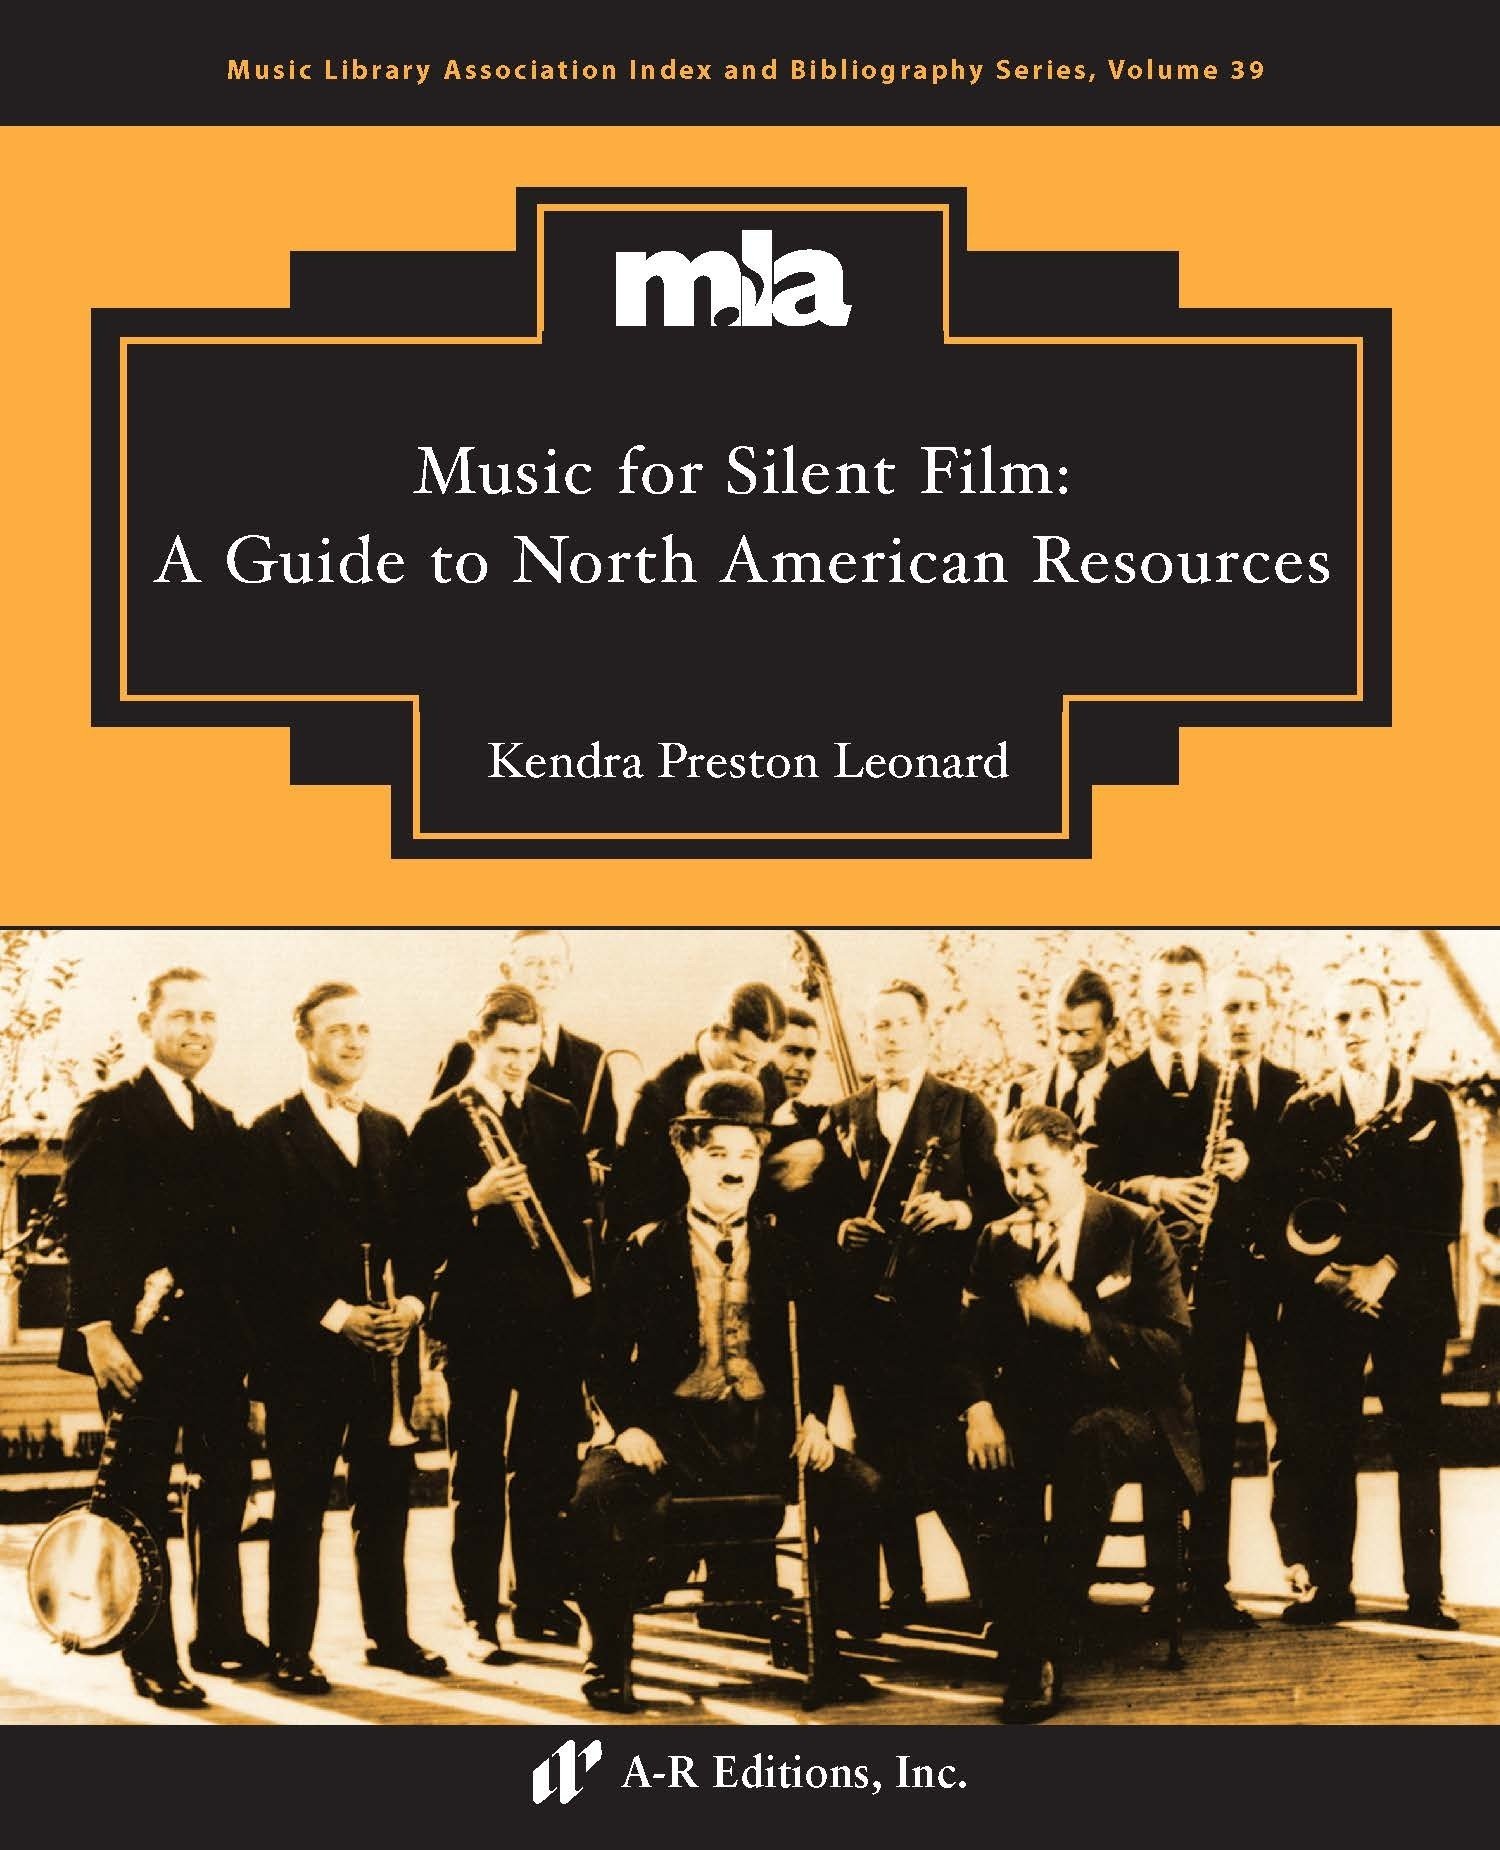 Leonard: Music for Silent Film